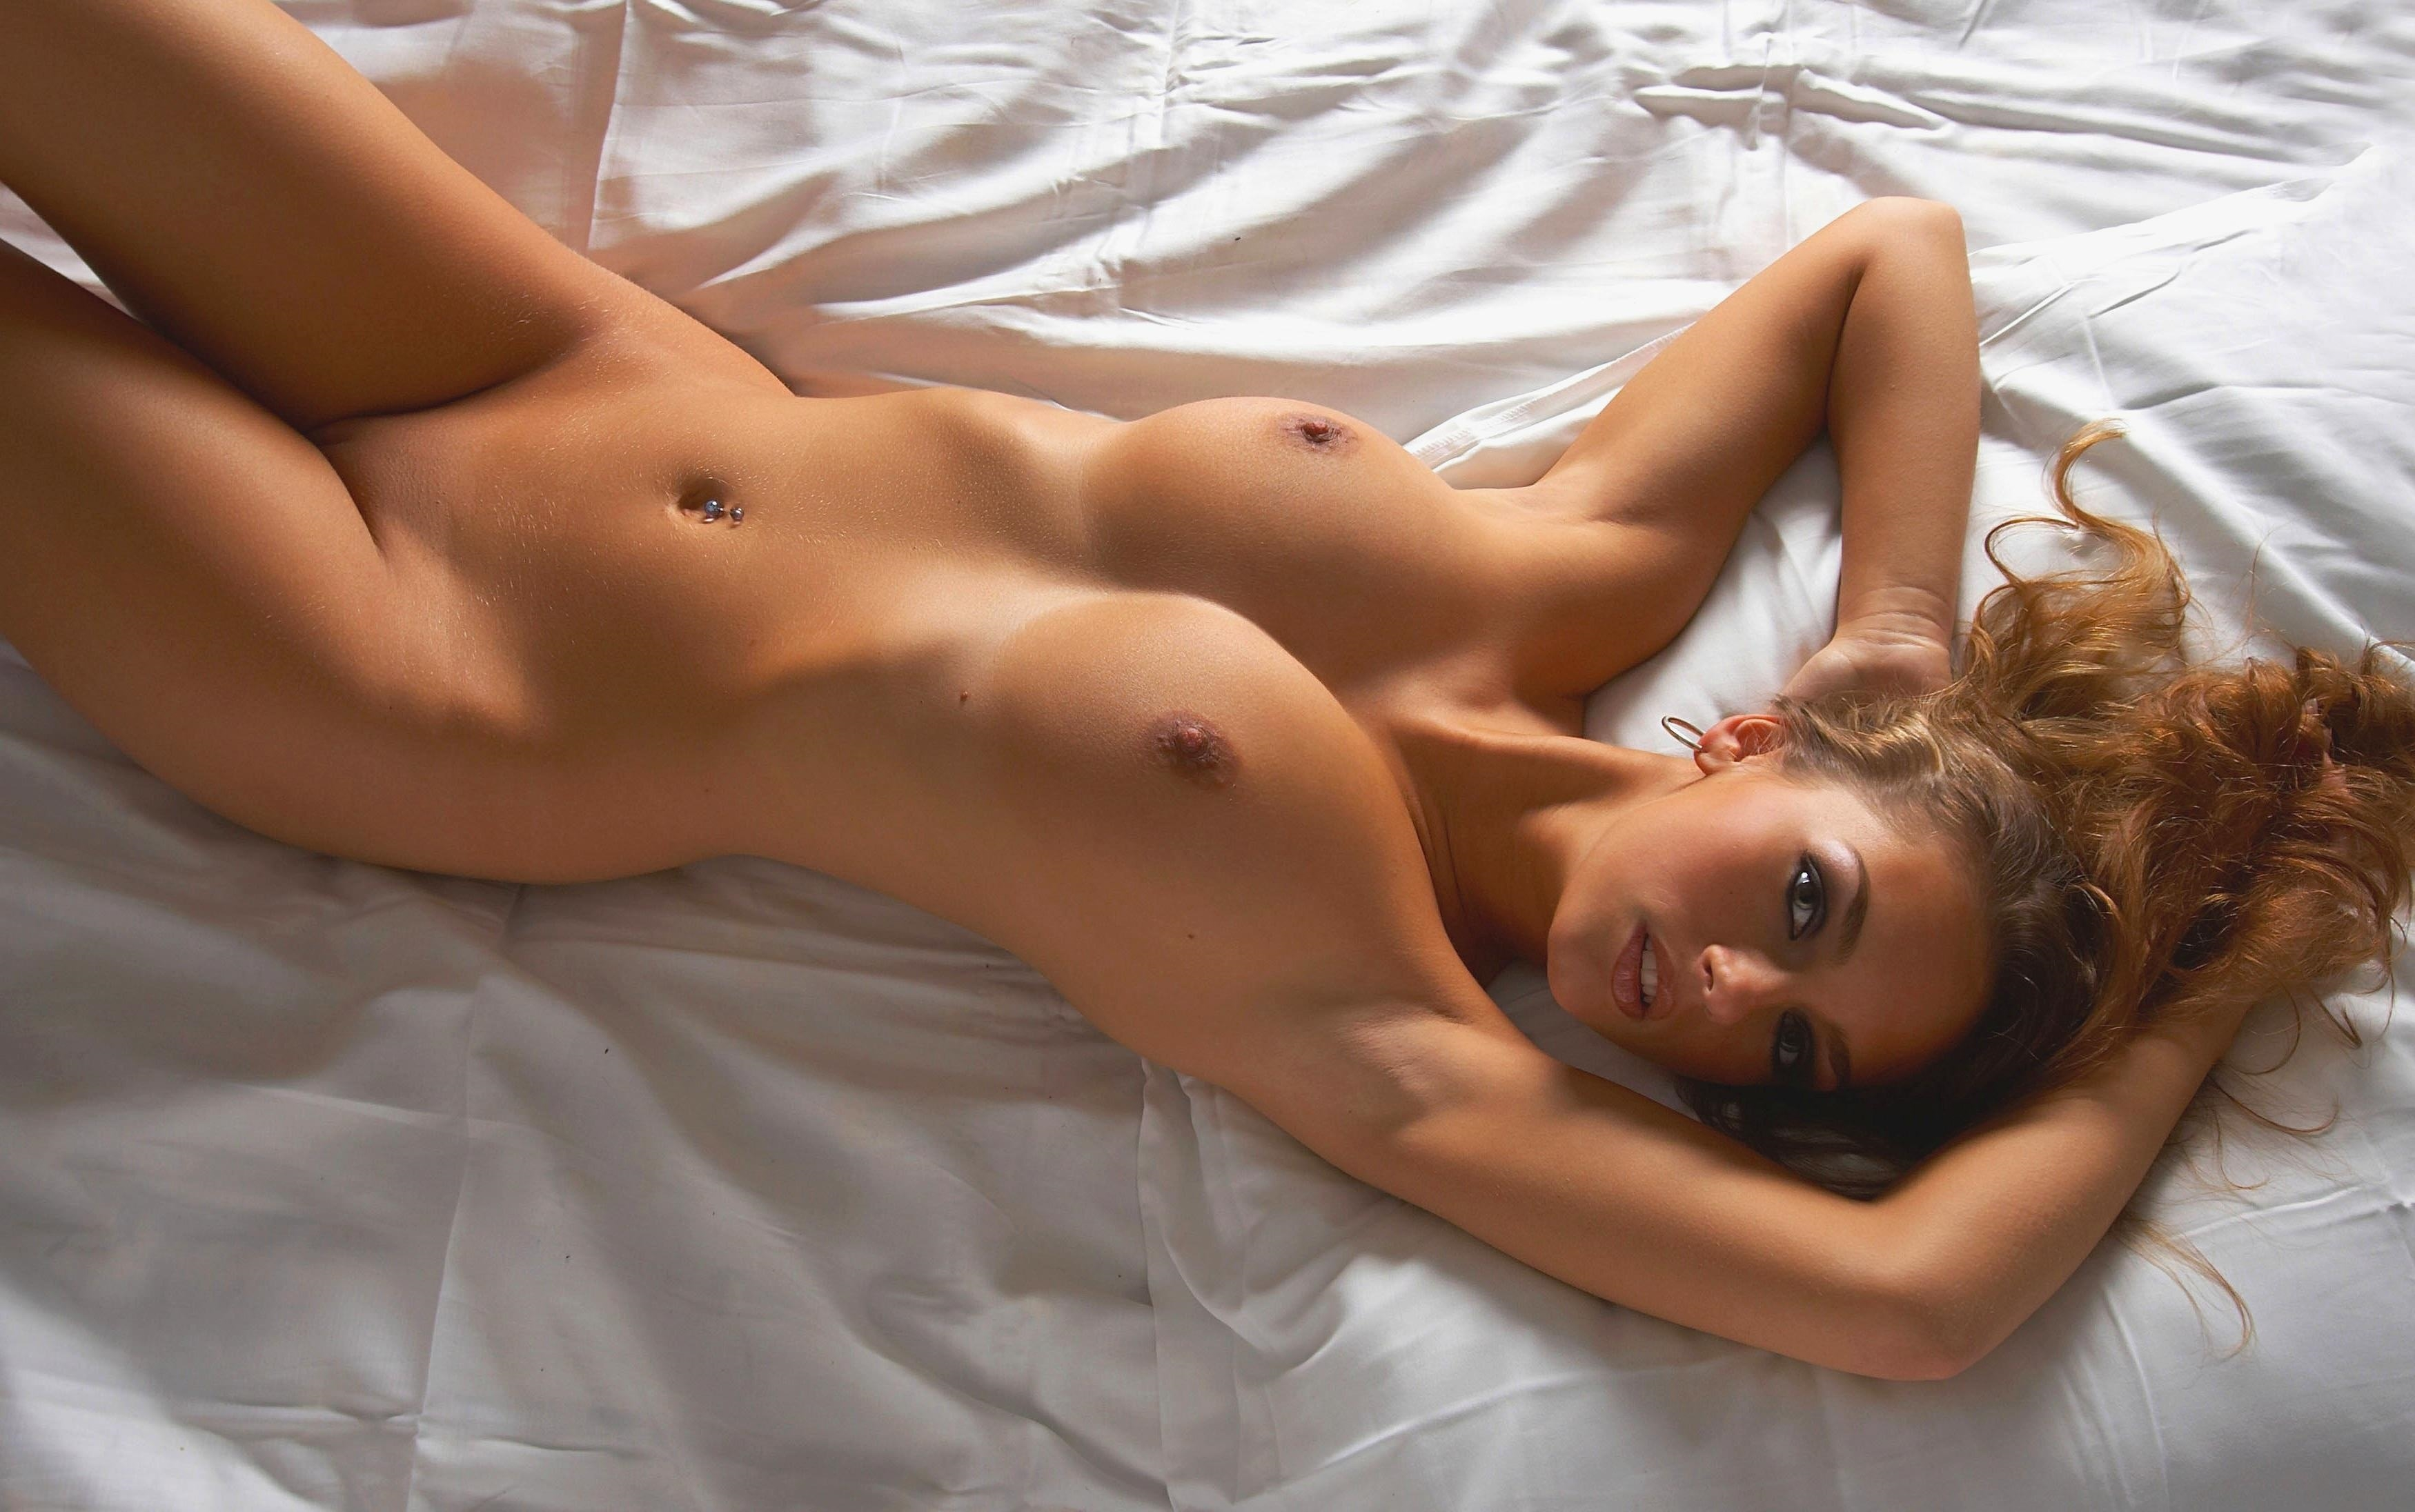 Naked perfect woman